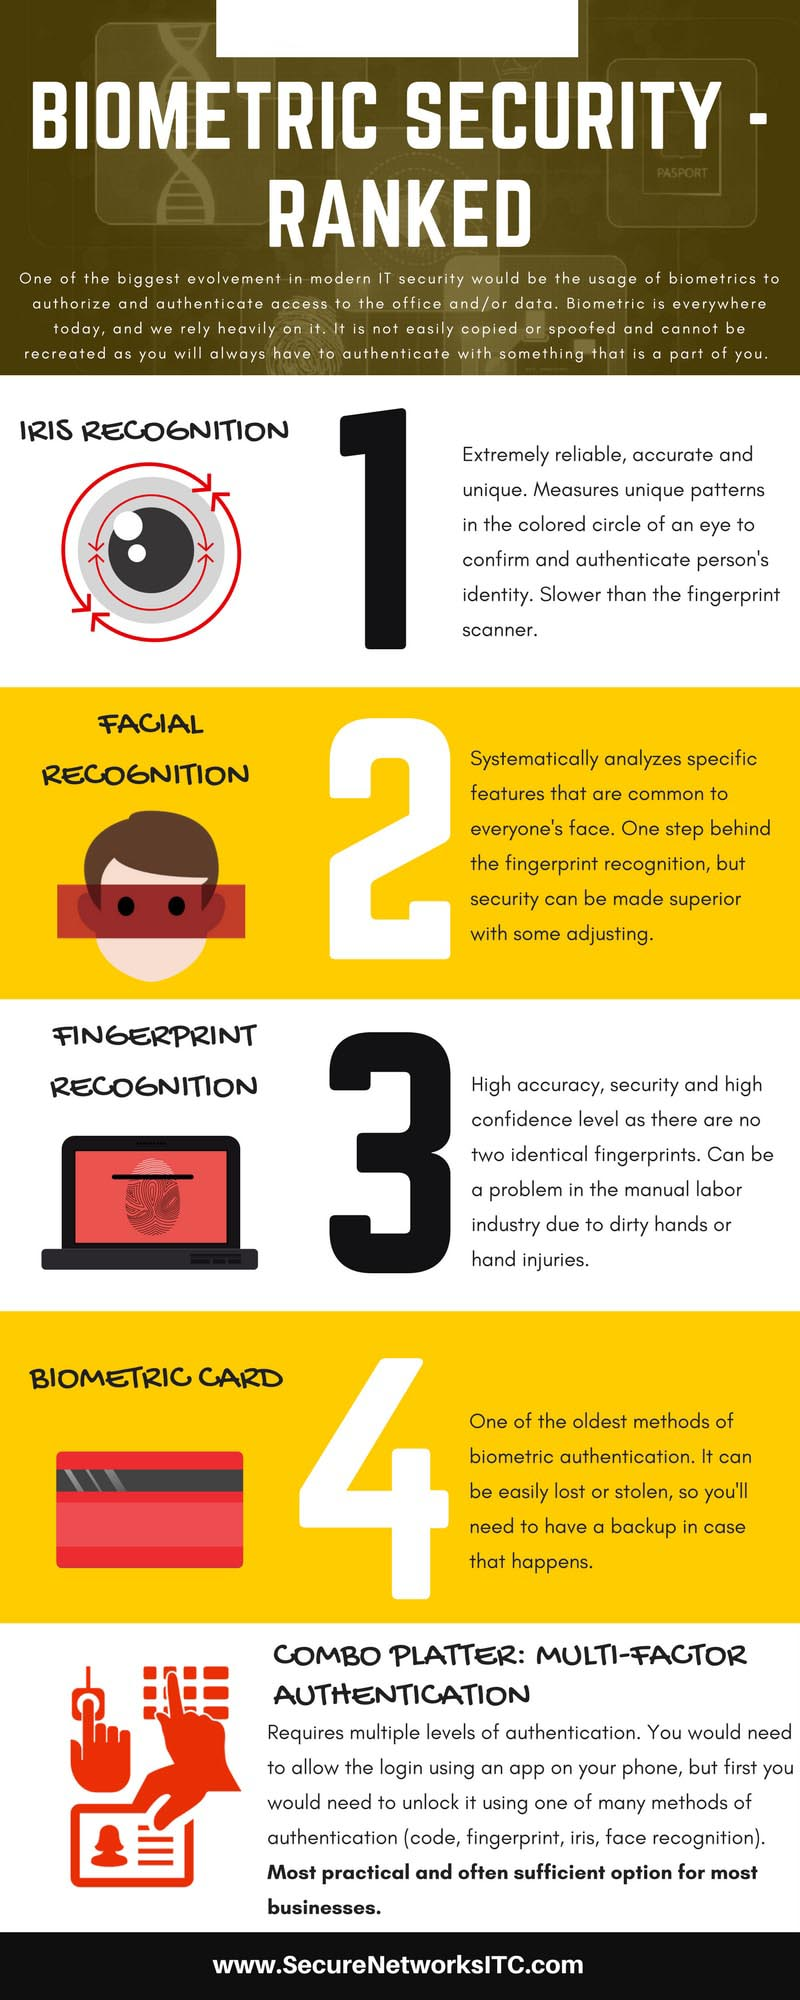 Biometric-Security-Ranked-Secure-Networks-ITC-Infographic